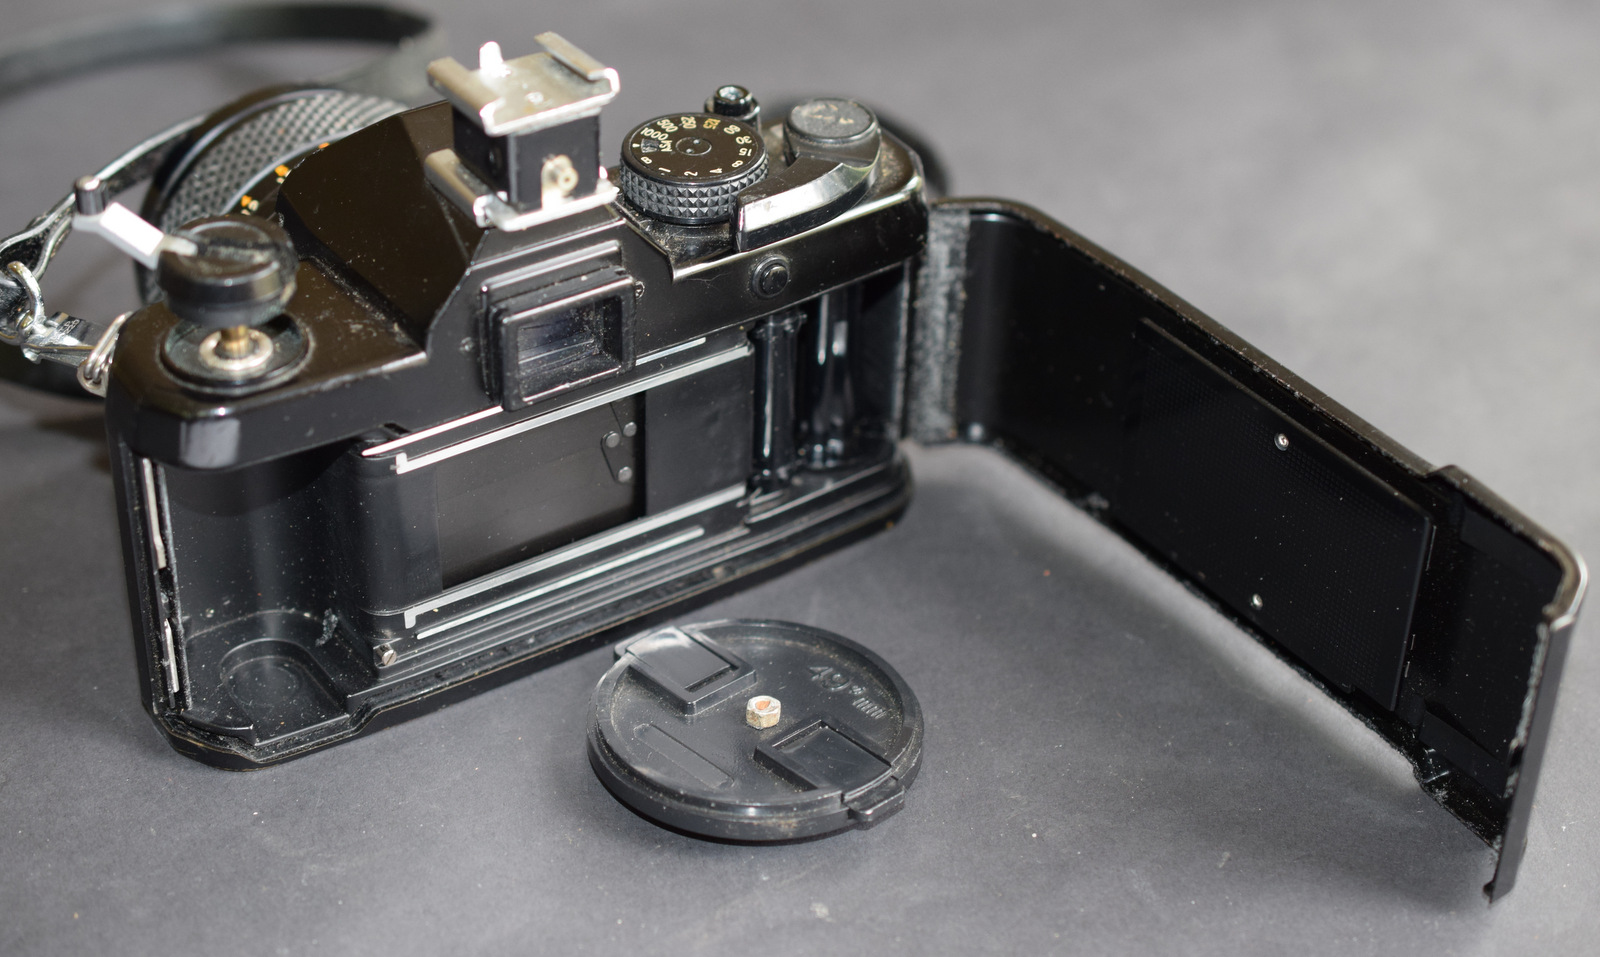 Lot 18 - Yashica FX-3 35mm Camera